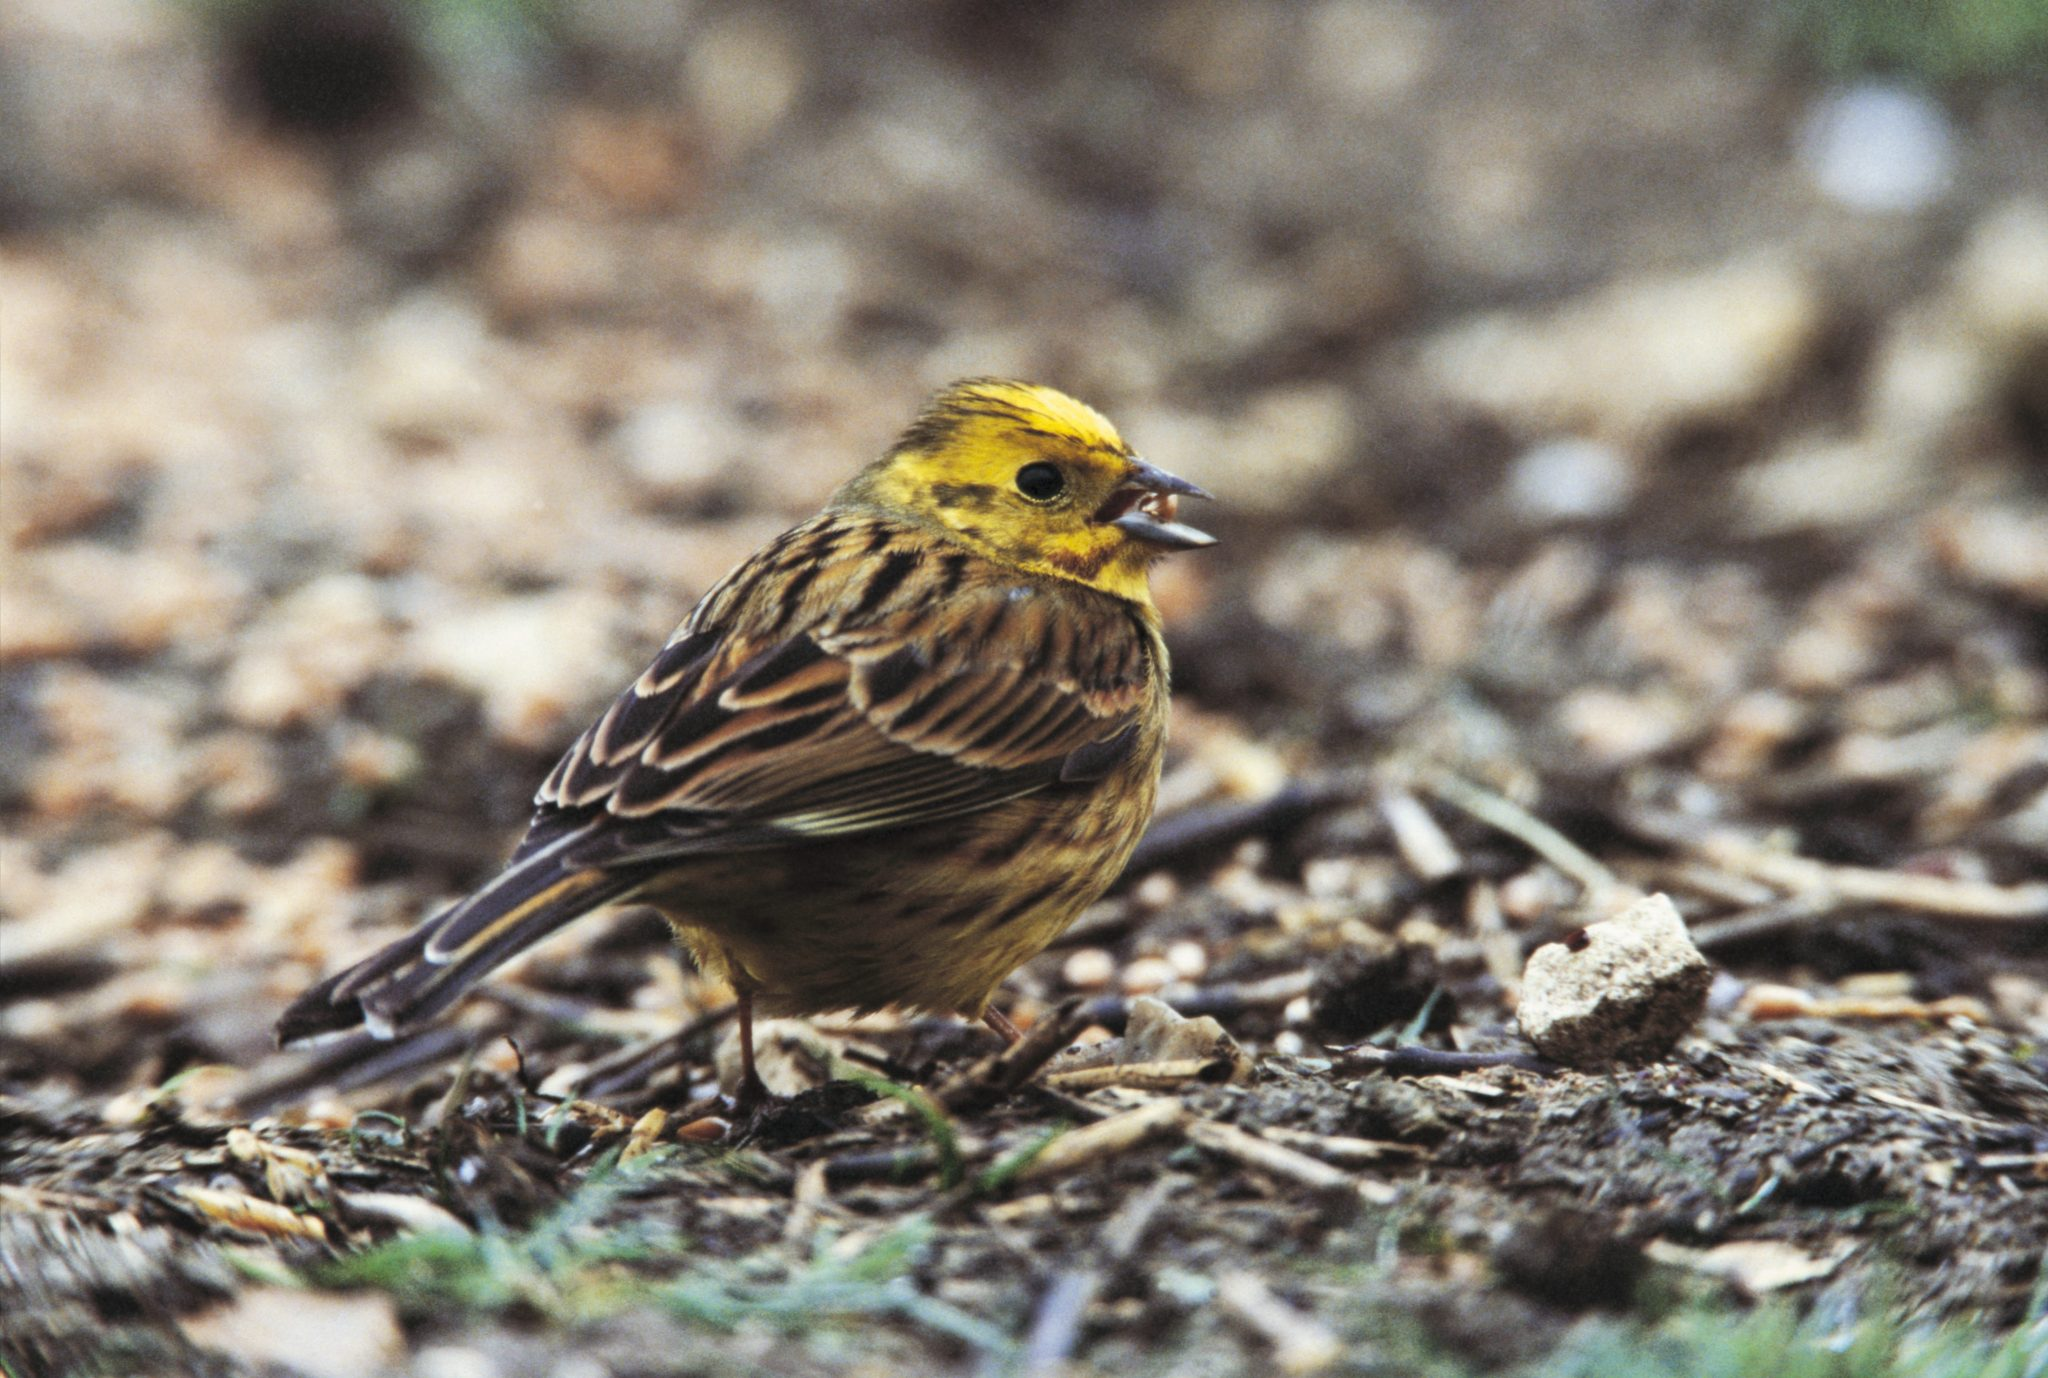 Yellowhammer Emberiza citrinella, adult male feeding on grain at Hope Farm,  April 2002